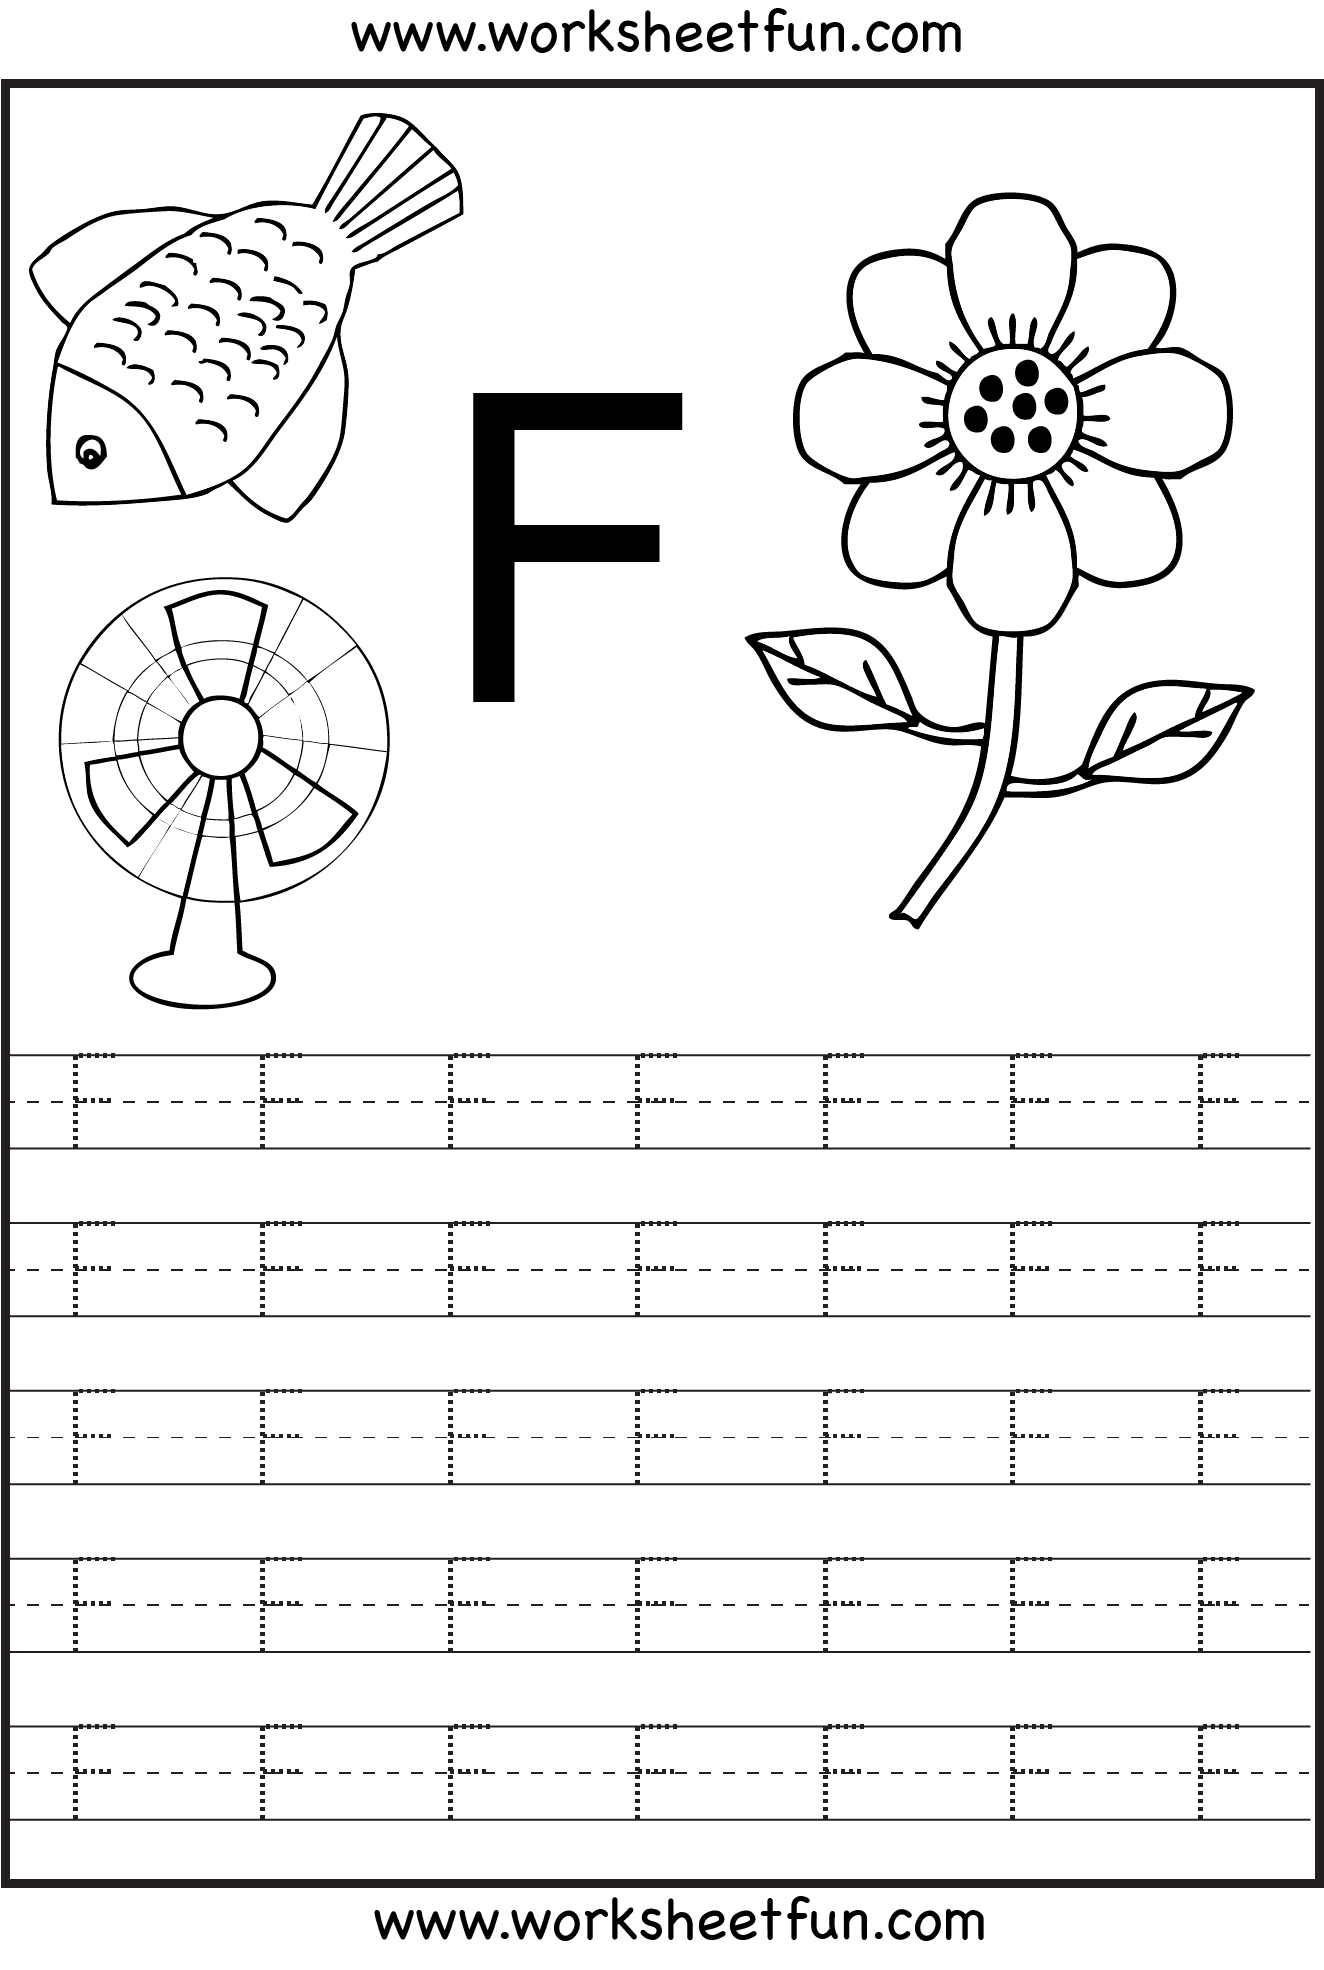 letter f worksheets | h3dwallpapers - High Definition Free ...